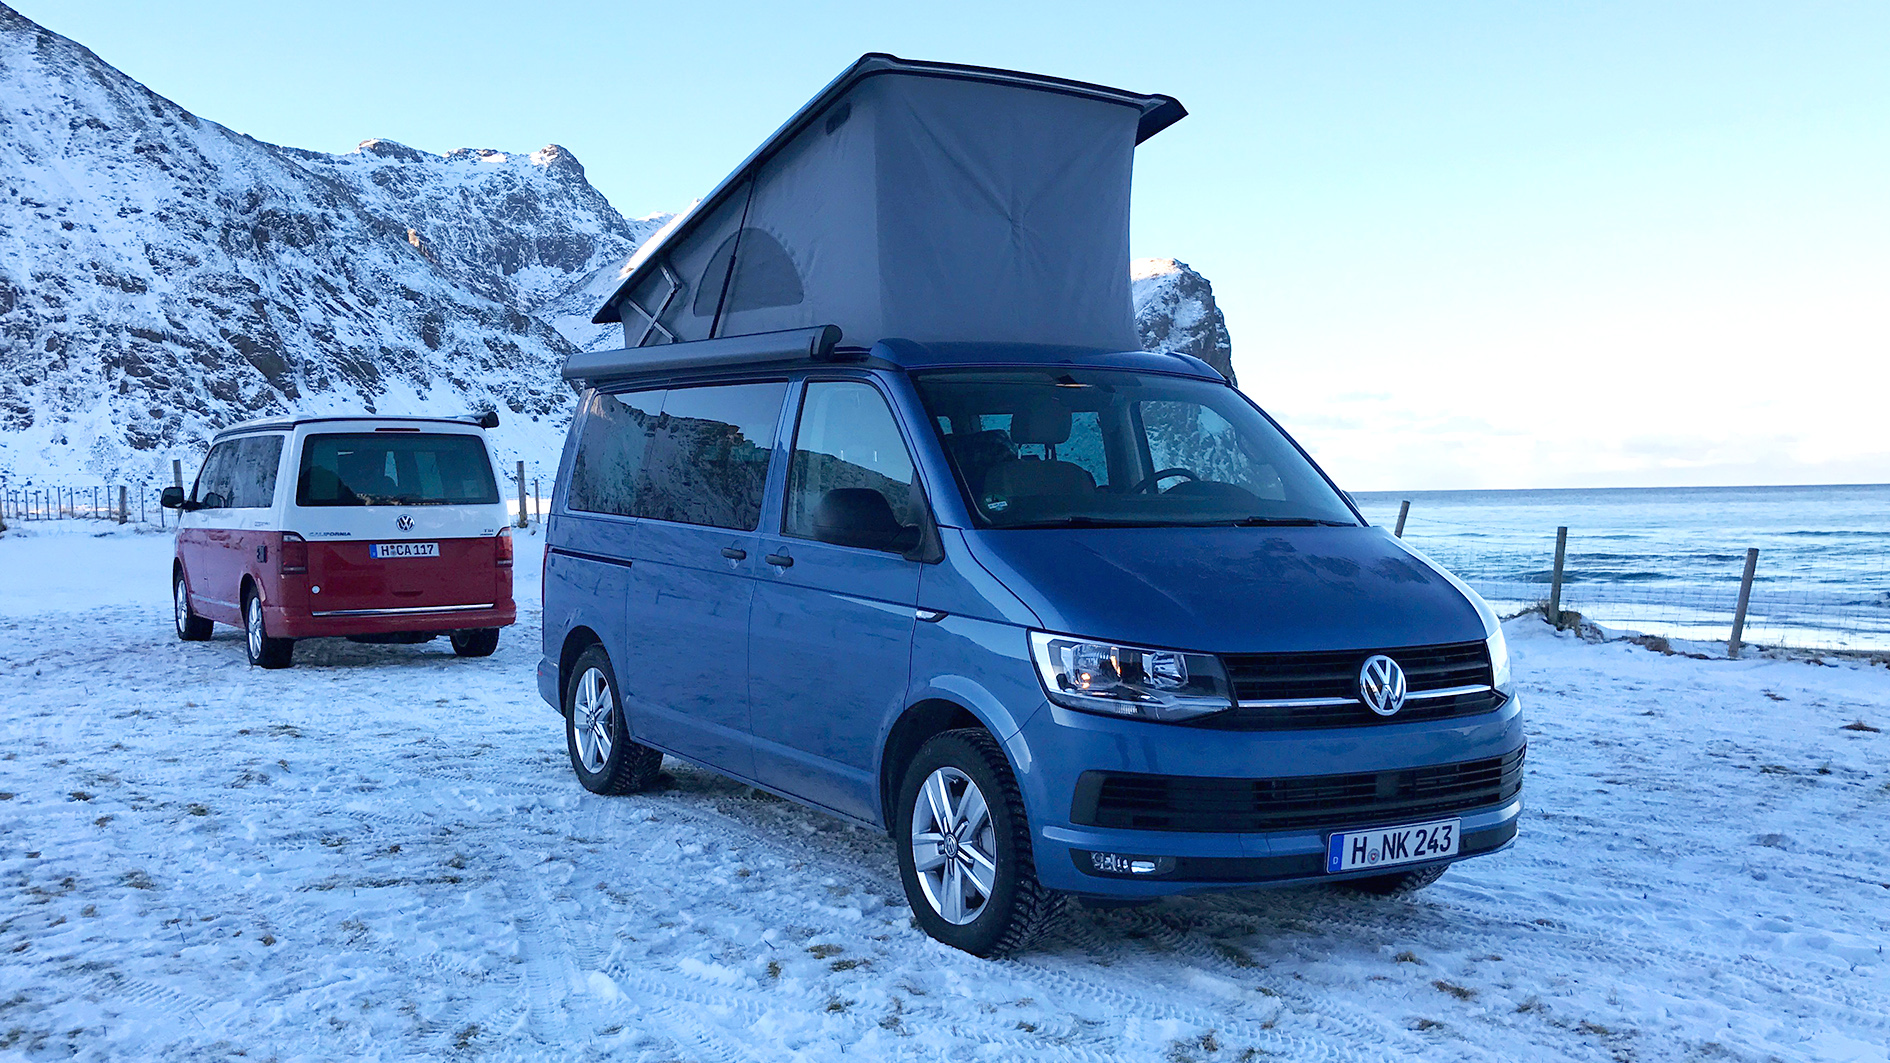 volkswagen vw t6 california 2017 trip to the lofoten. Black Bedroom Furniture Sets. Home Design Ideas